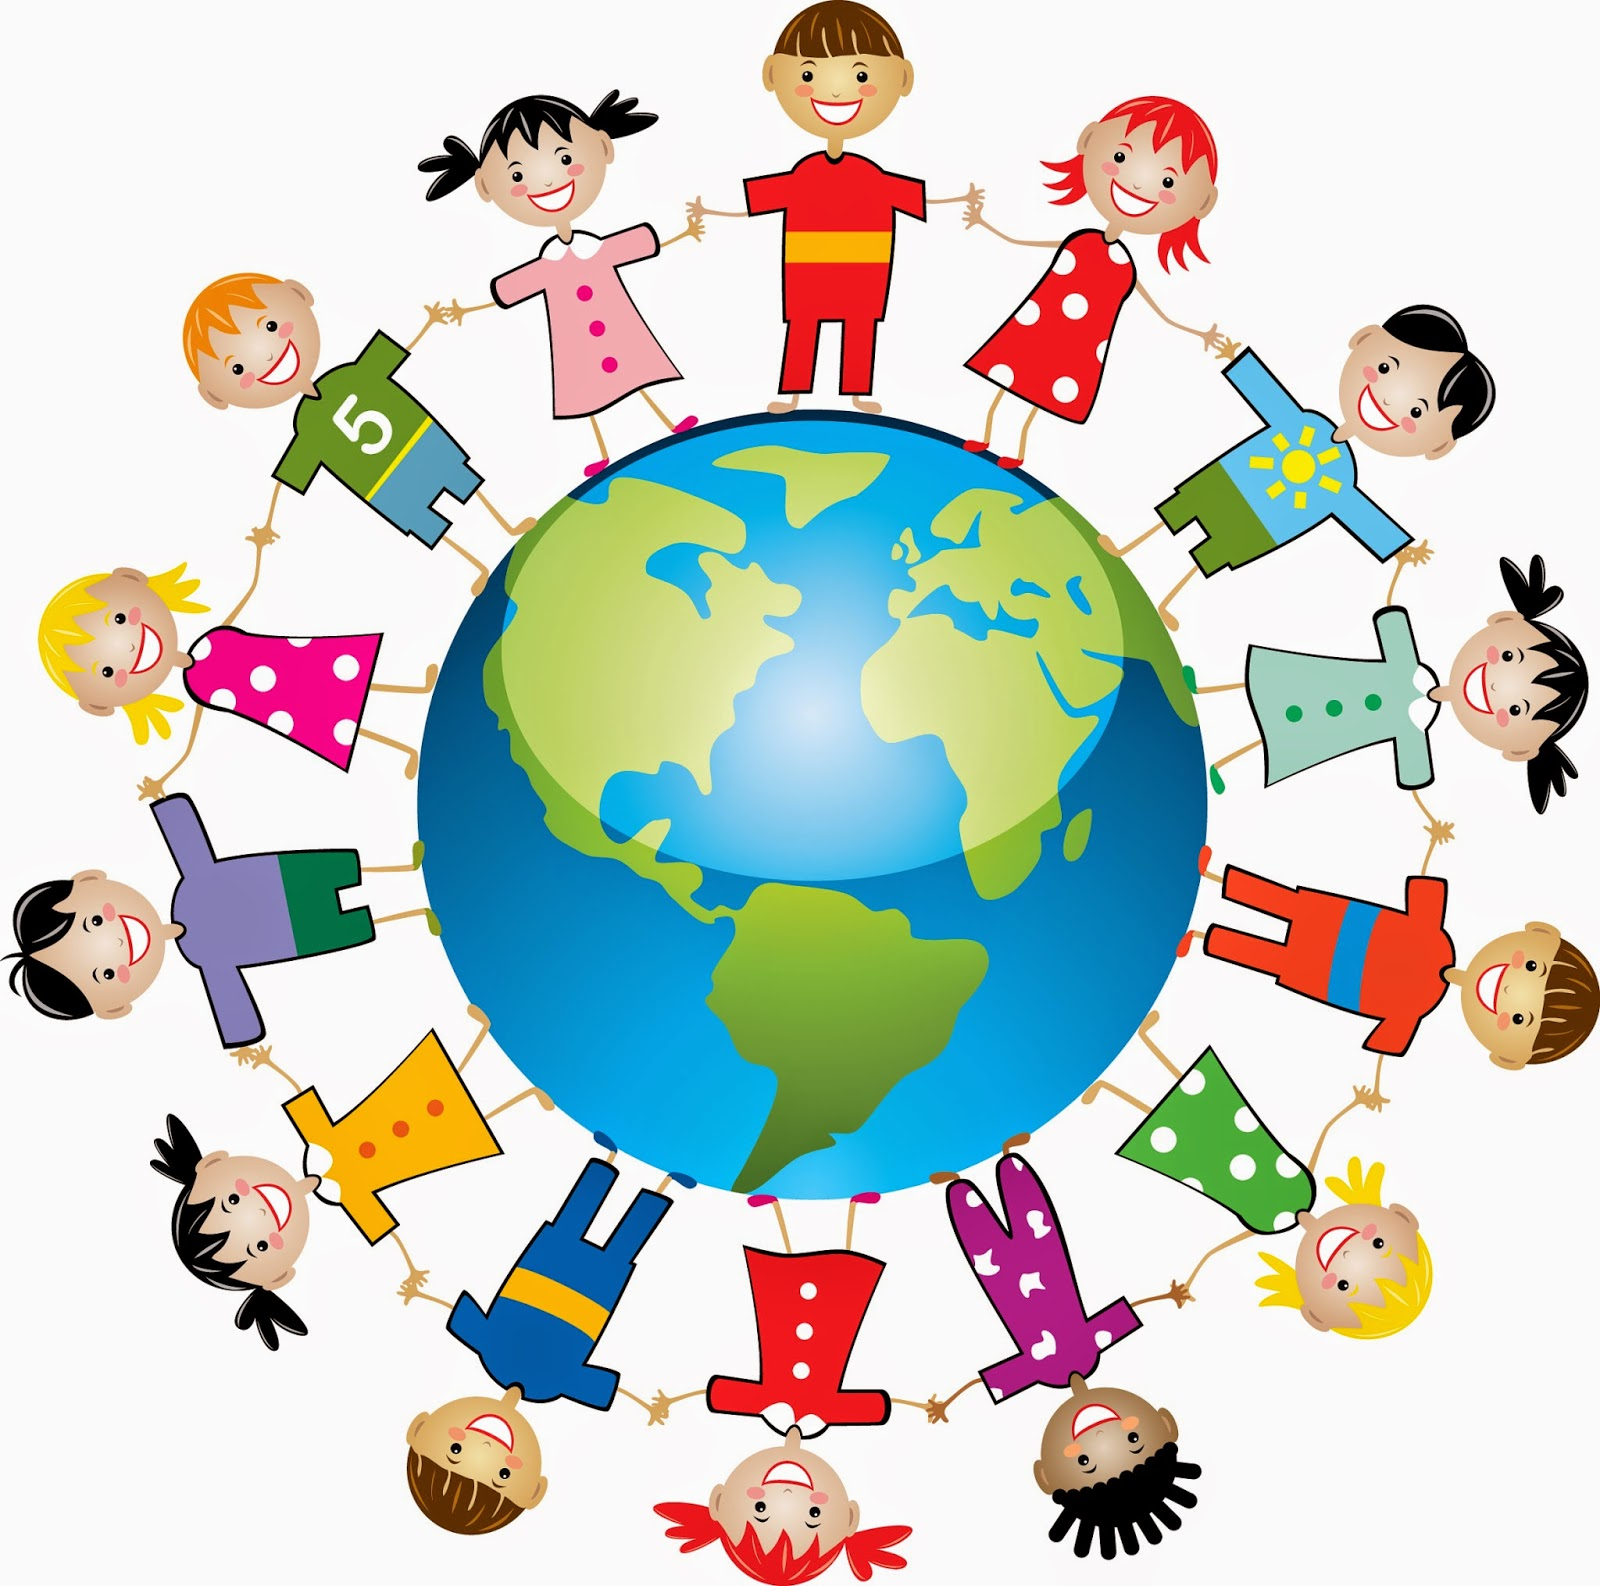 Celebrate clipart multicultural. Clark county preschool page